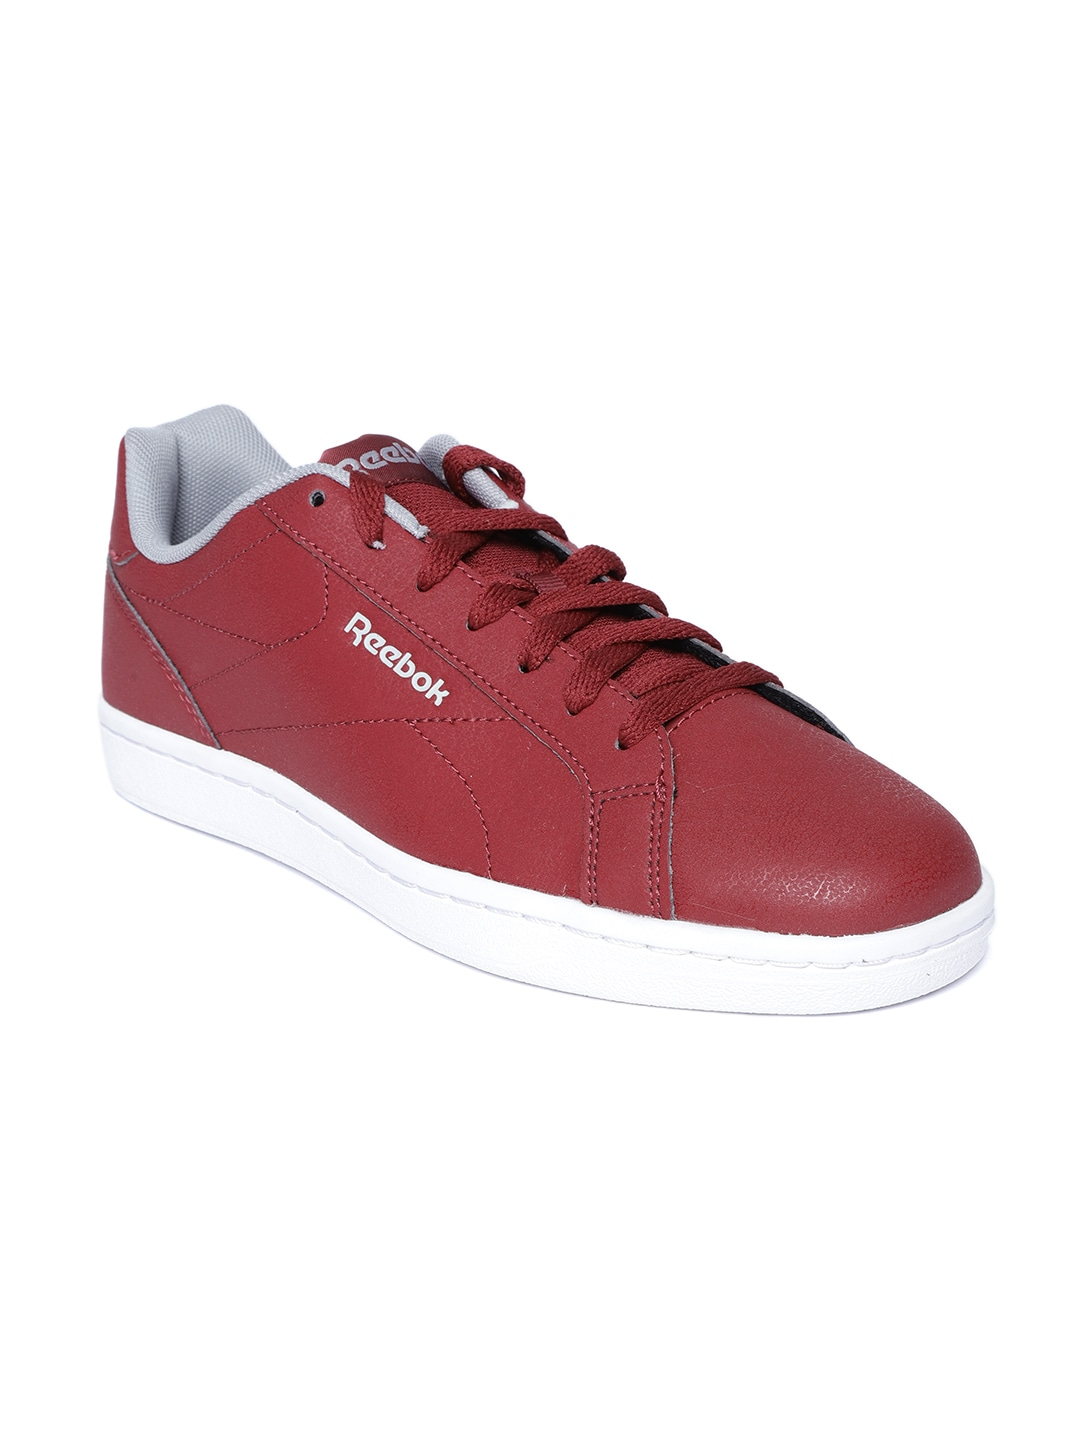 d5034afe700 Reebok Shoes Only Sole - Buy Reebok Shoes Only Sole online in India